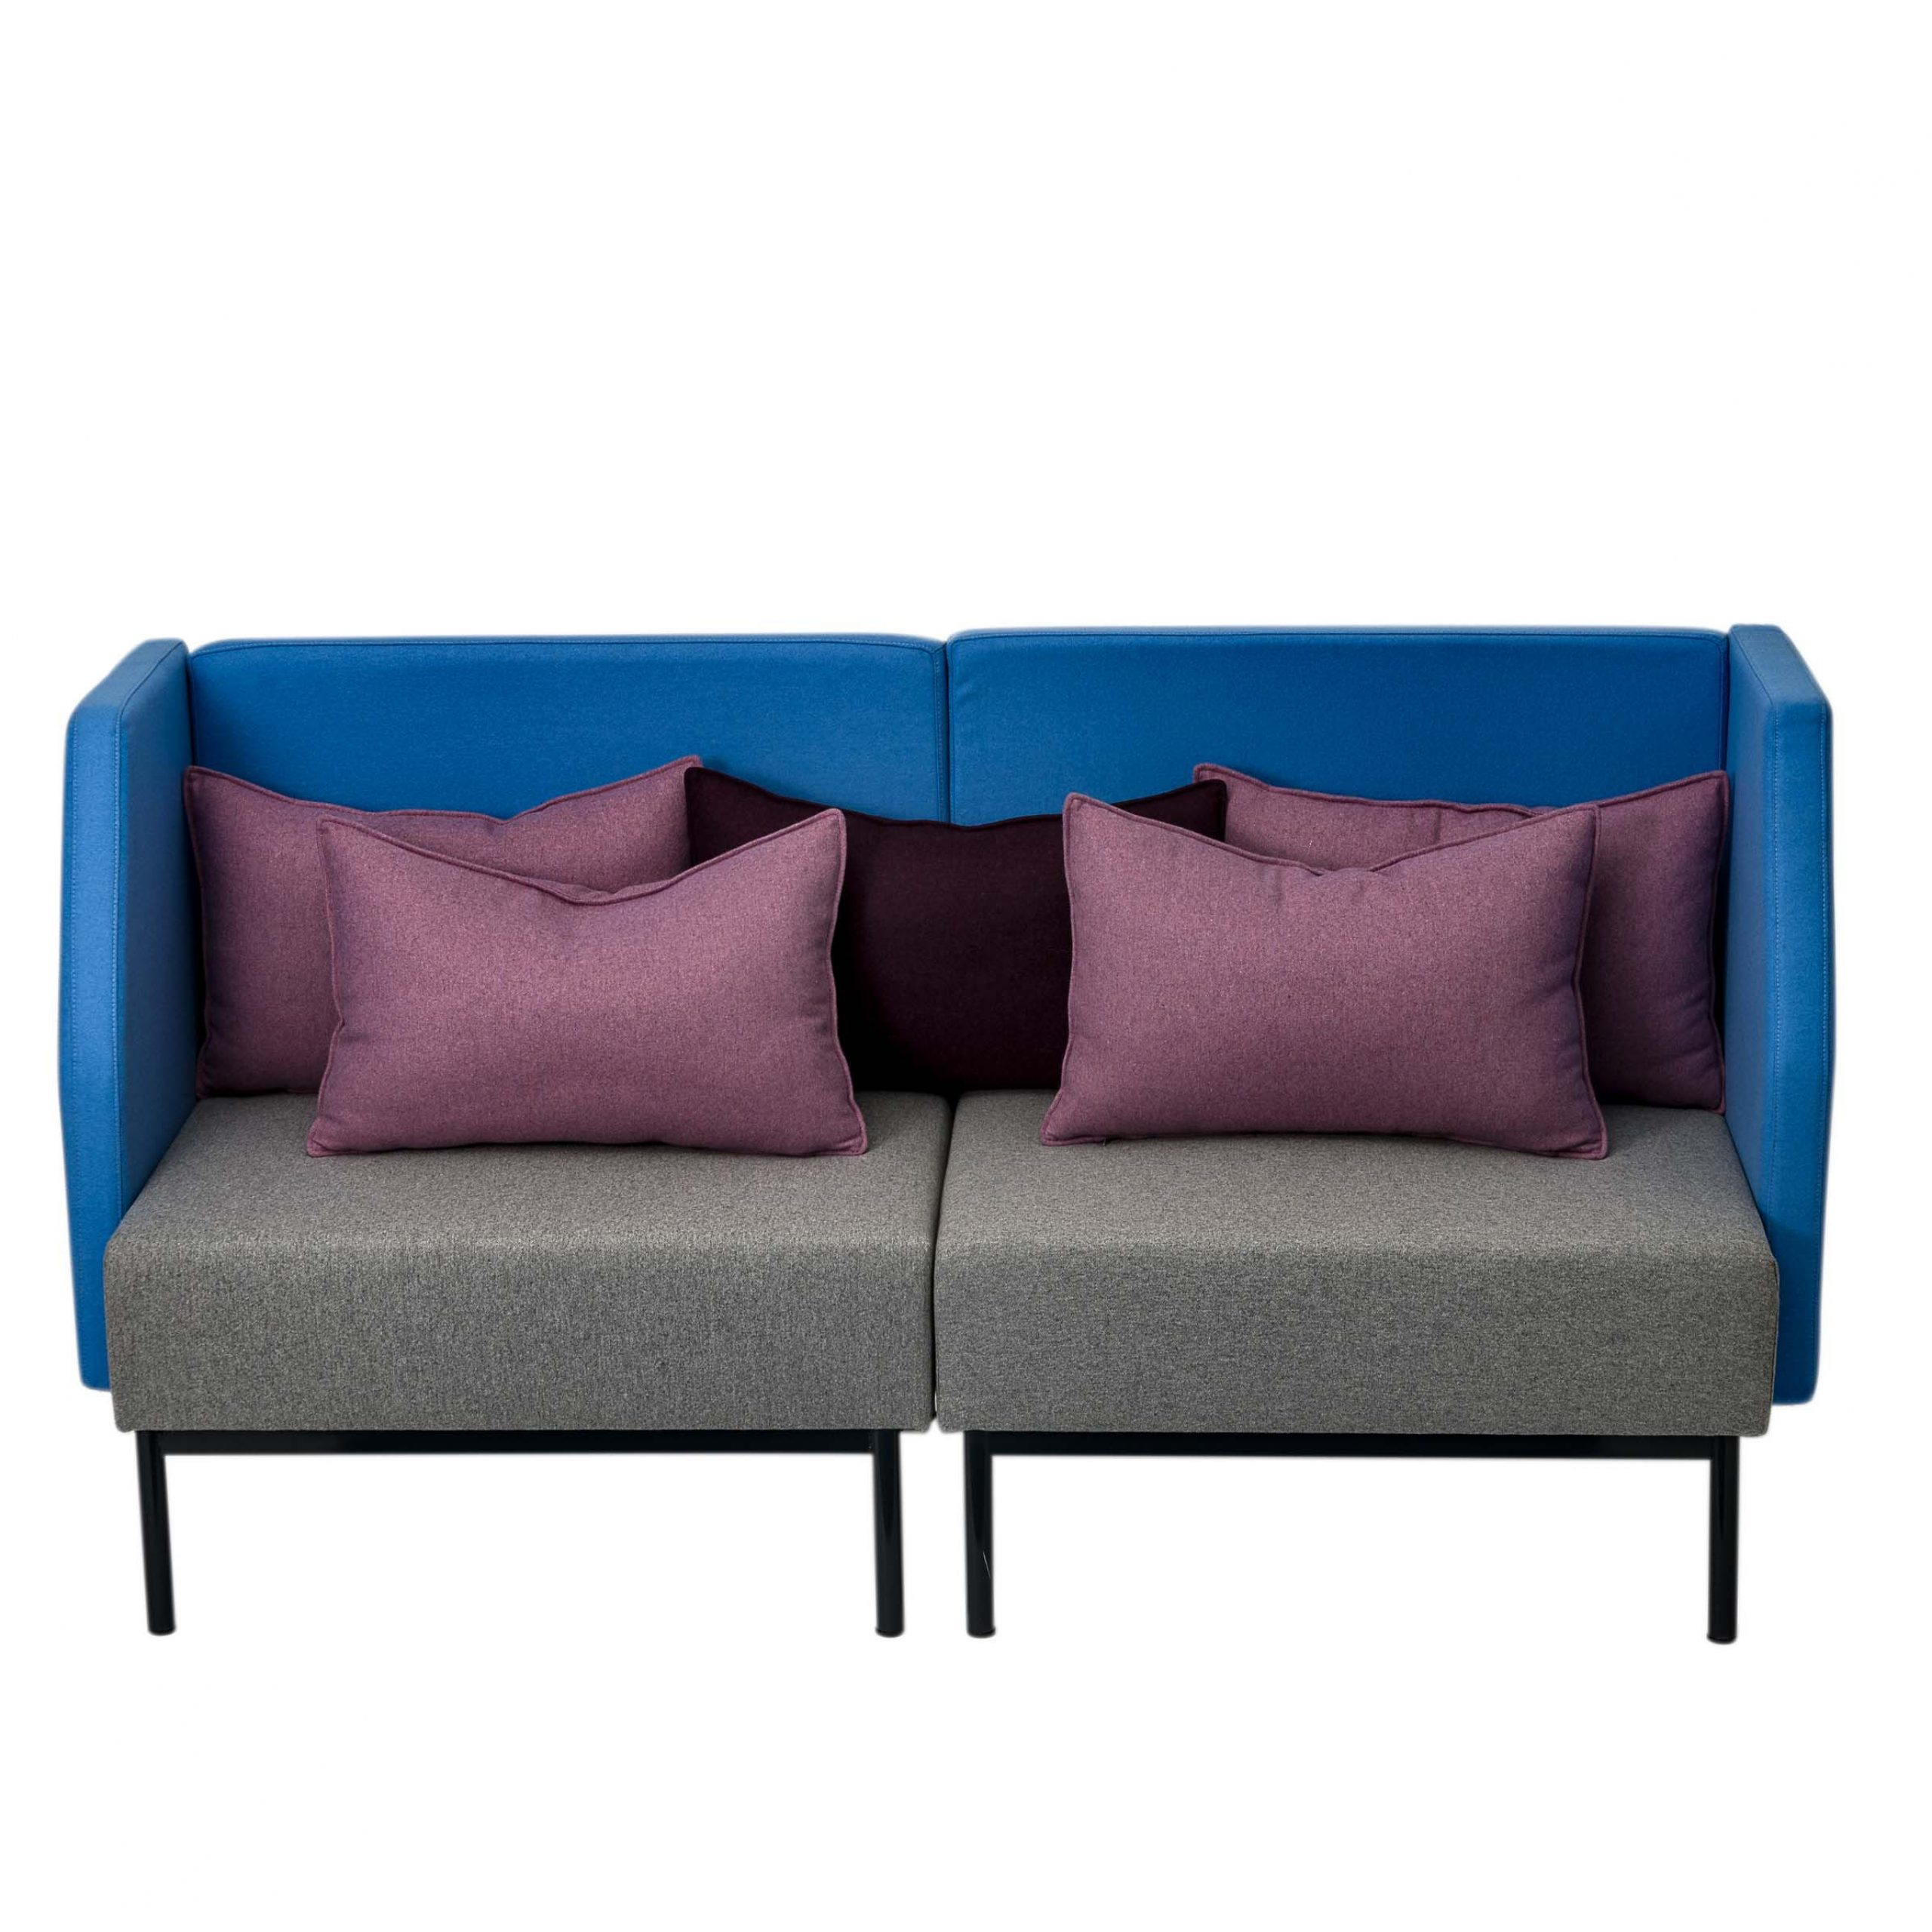 Salvato Sofas With Cushion Regarding Well Known Pin Di Real Piel Italia Su Soft Seating (View 18 of 25)